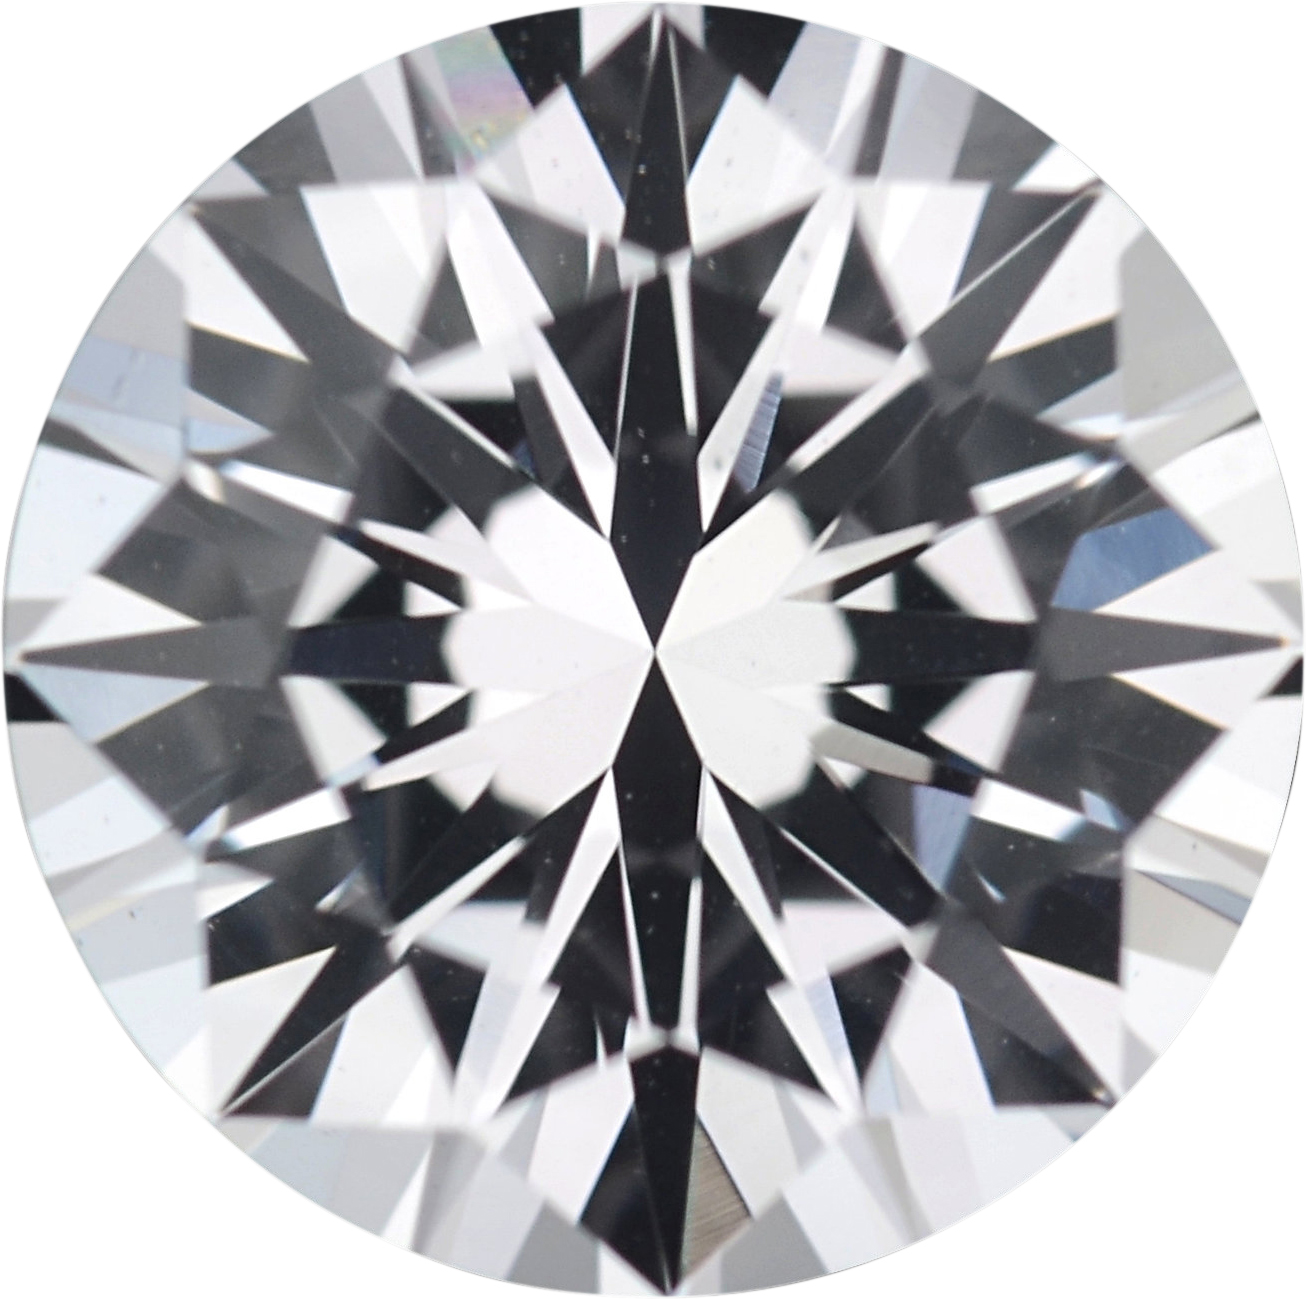 1.35 carats White Loose Sapphire Gemstone in Round Cut, 6.72 mm